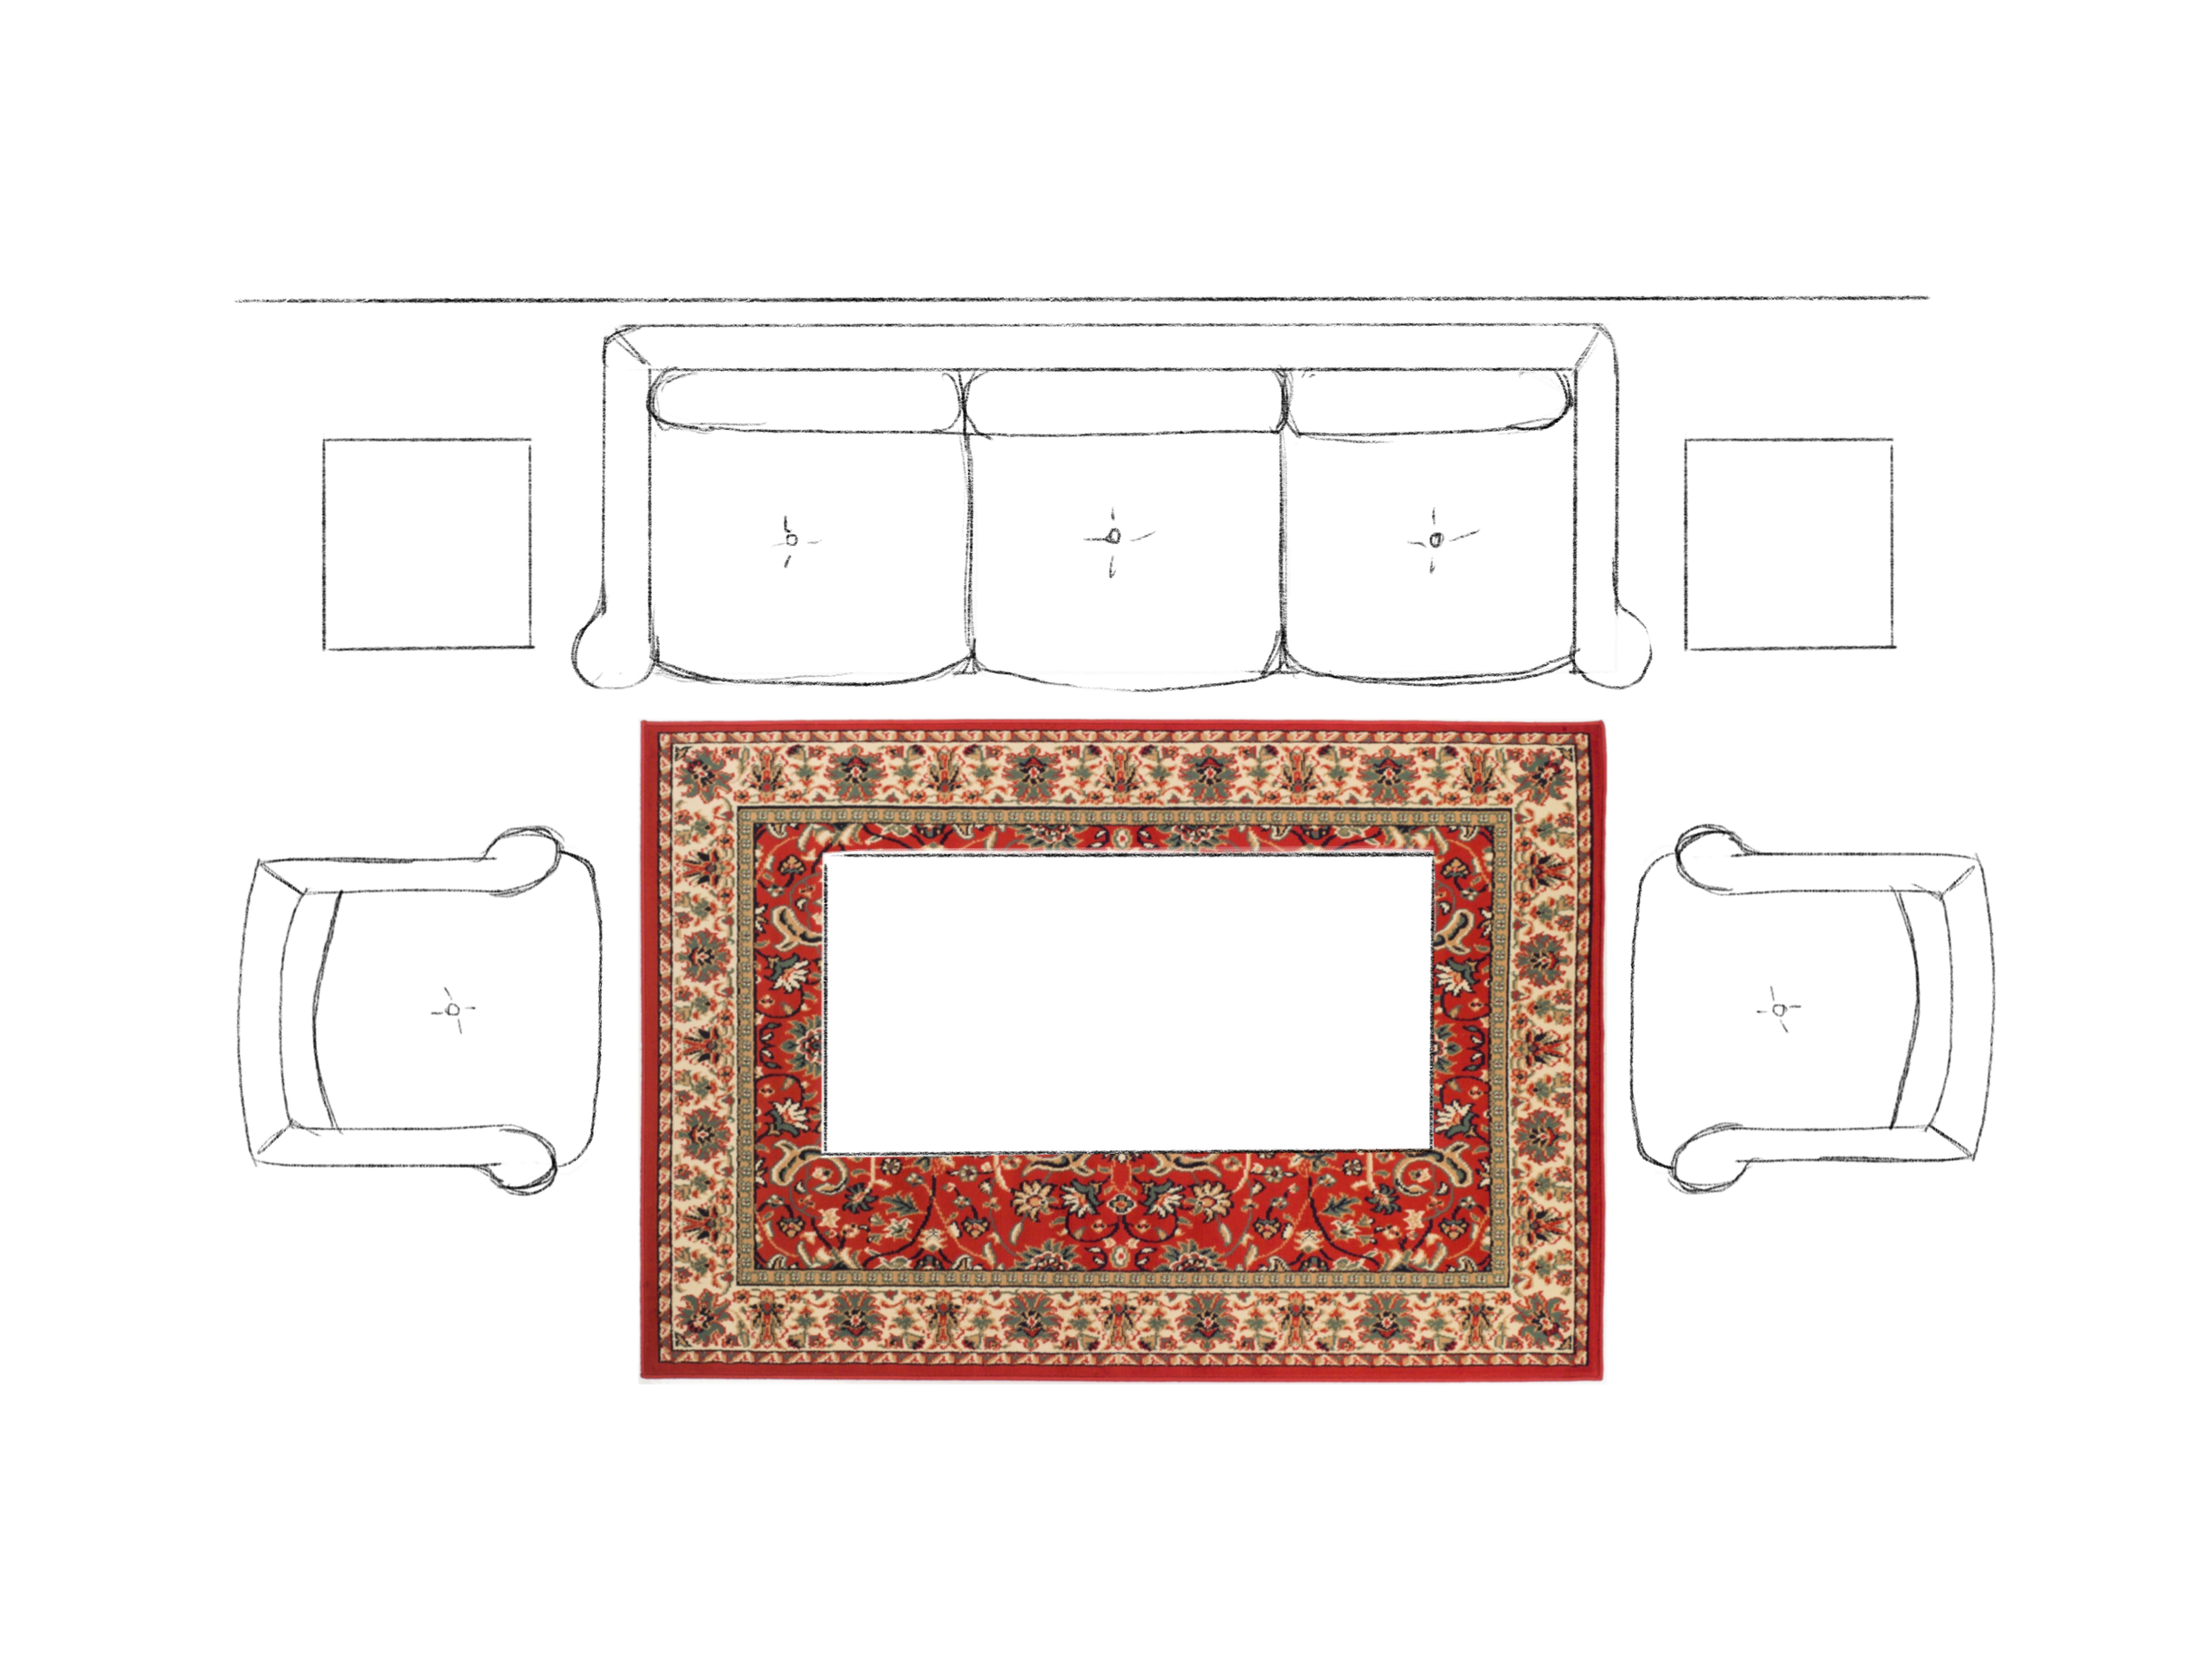 How to Choose the Right Size Area Rug - All Legs Off Living Room Layout. Asha-Maia Design | Interiors + Events, Alexandria, VA 22302